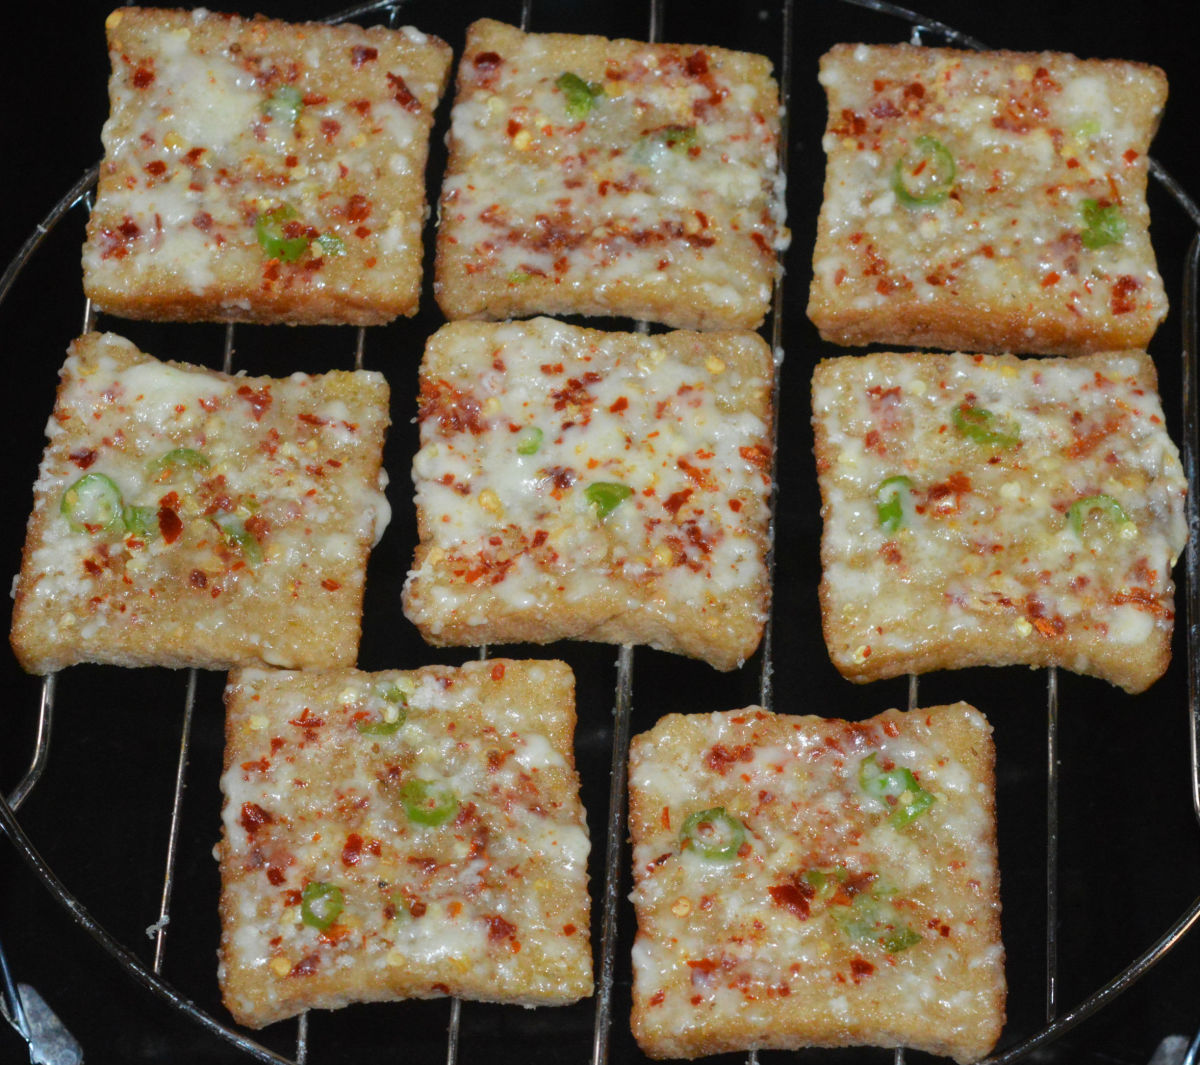 Chili cheese toast is ready to enjoy!